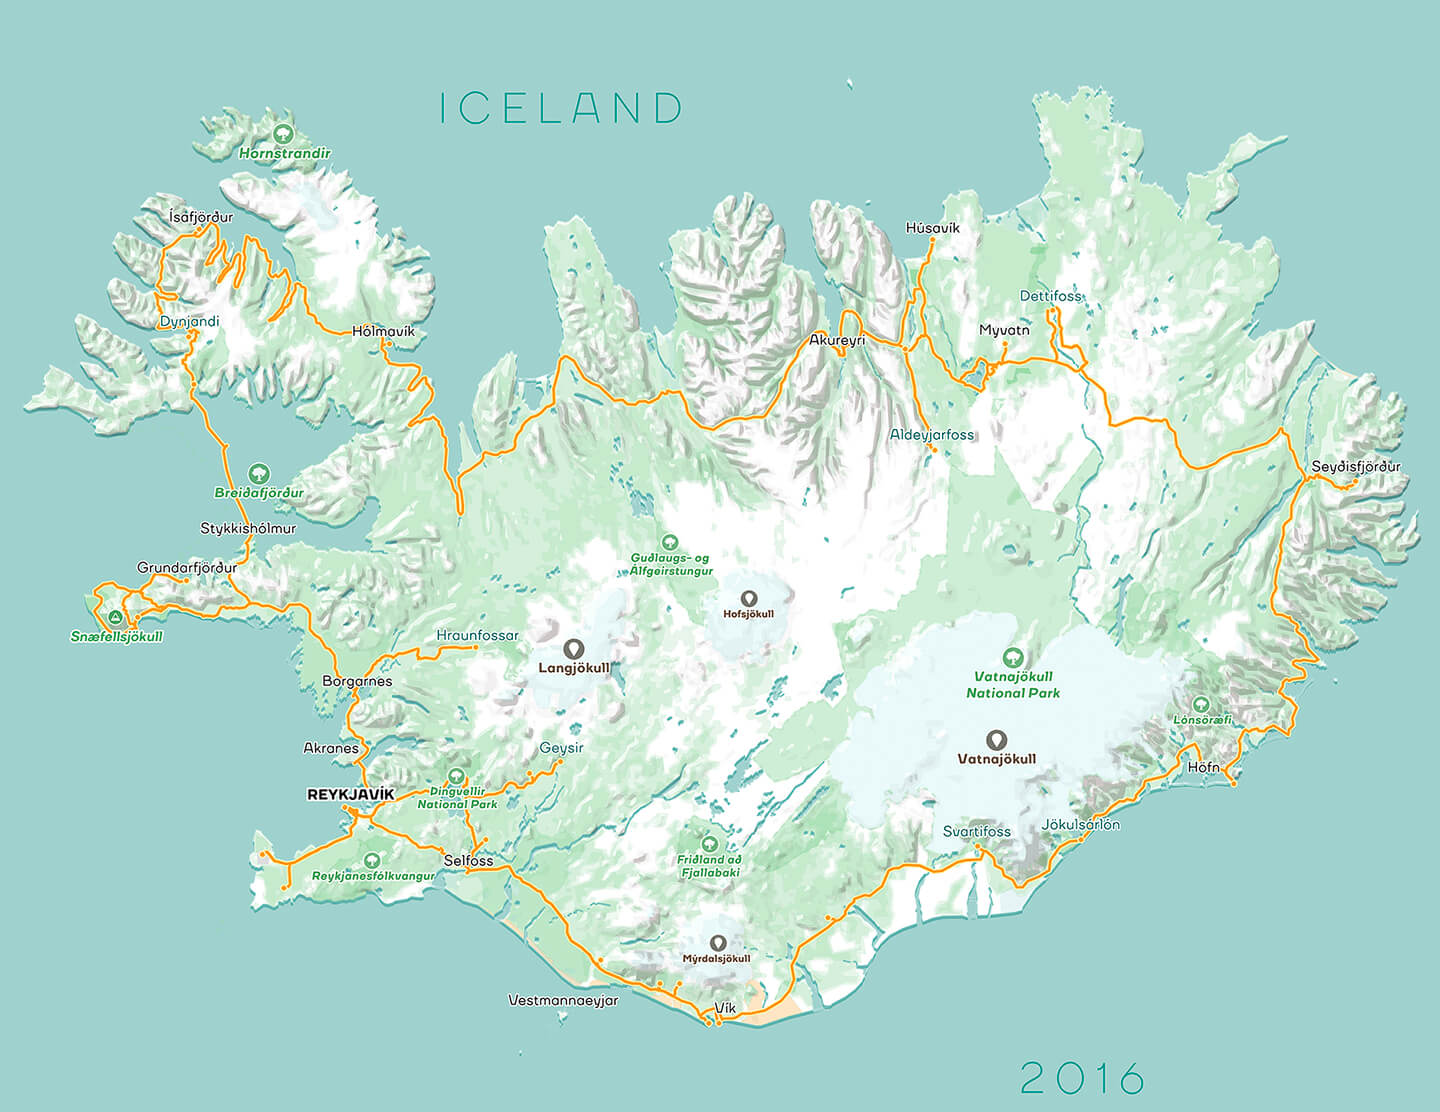 Map of Iceland designed by Nimit Shah